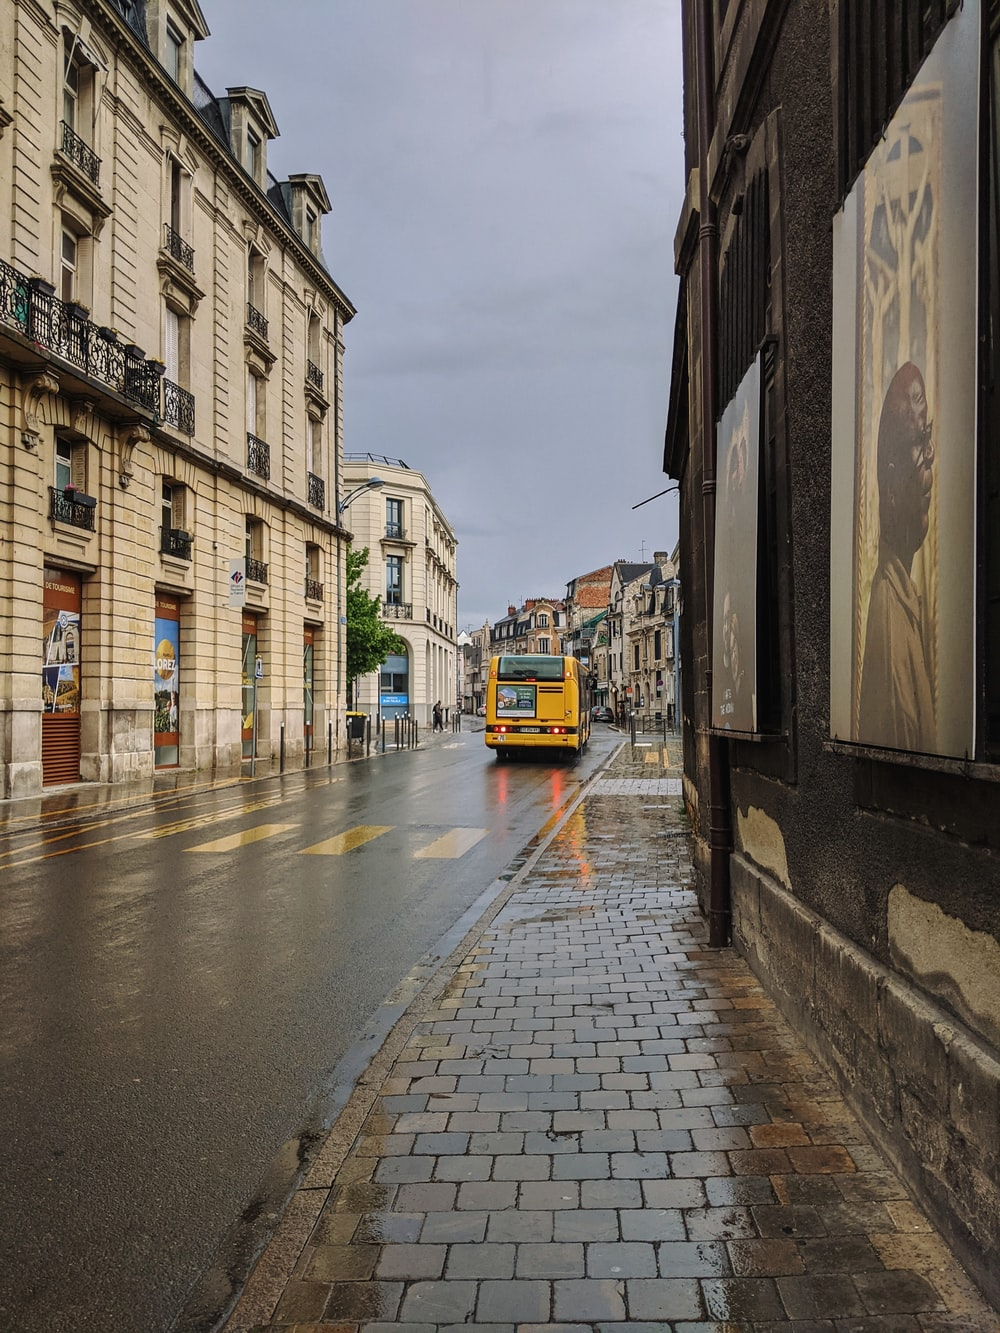 yellow bus on road during daytime